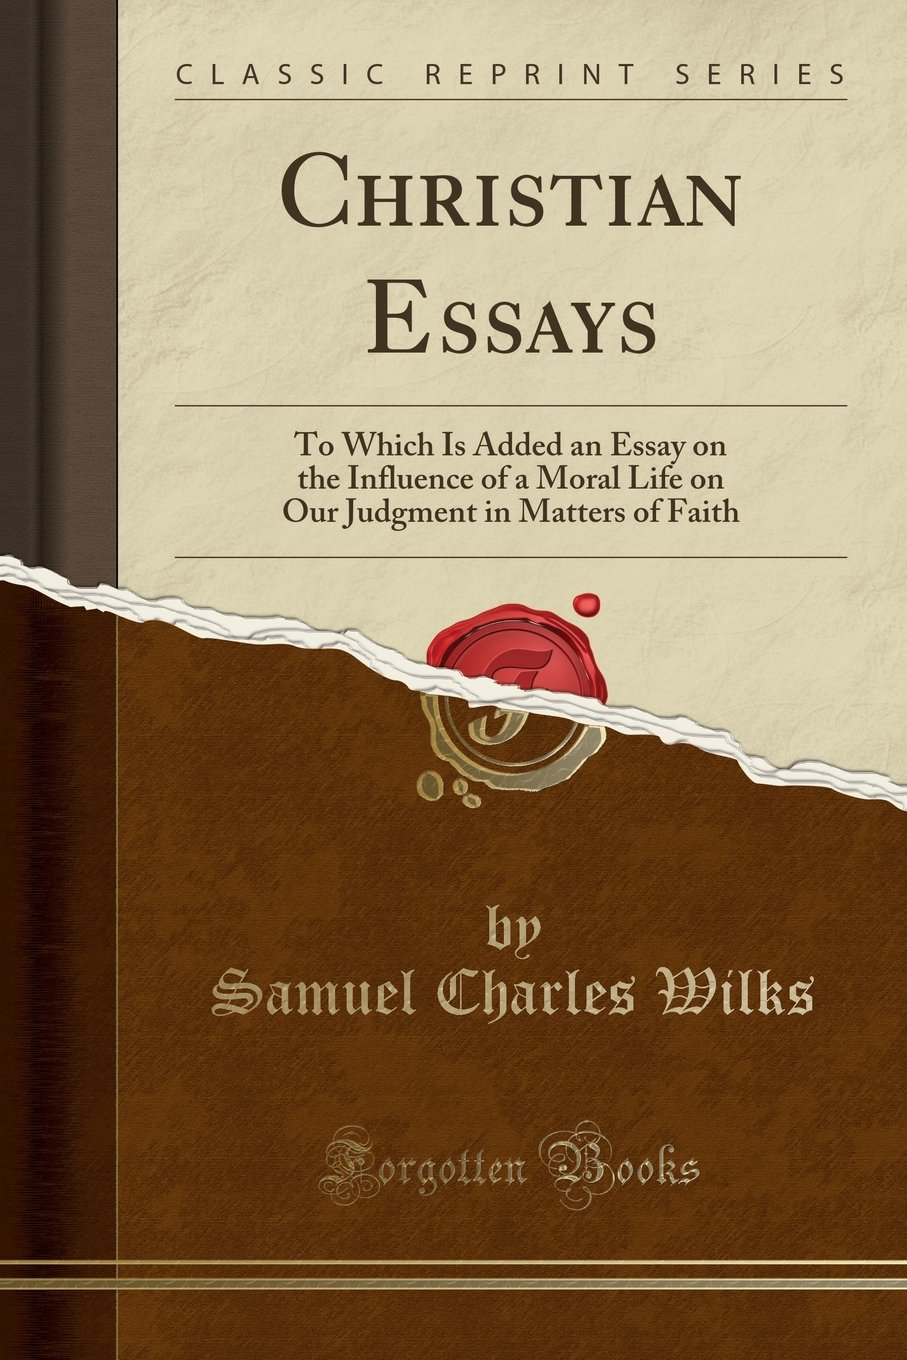 Tips For Writing A Descriptive Essay Christian Essays To Which Is Added An Essay On The Influence Of A Moral  Life On Our Judgment In Matters Of Faith Classic Reprint Samuel Charles  Wilks  Essays On The Odyssey also Environmental Issues Essay Topics Christian Essays To Which Is Added An Essay On The Influence Of A  Good Example Of Argumentative Essay